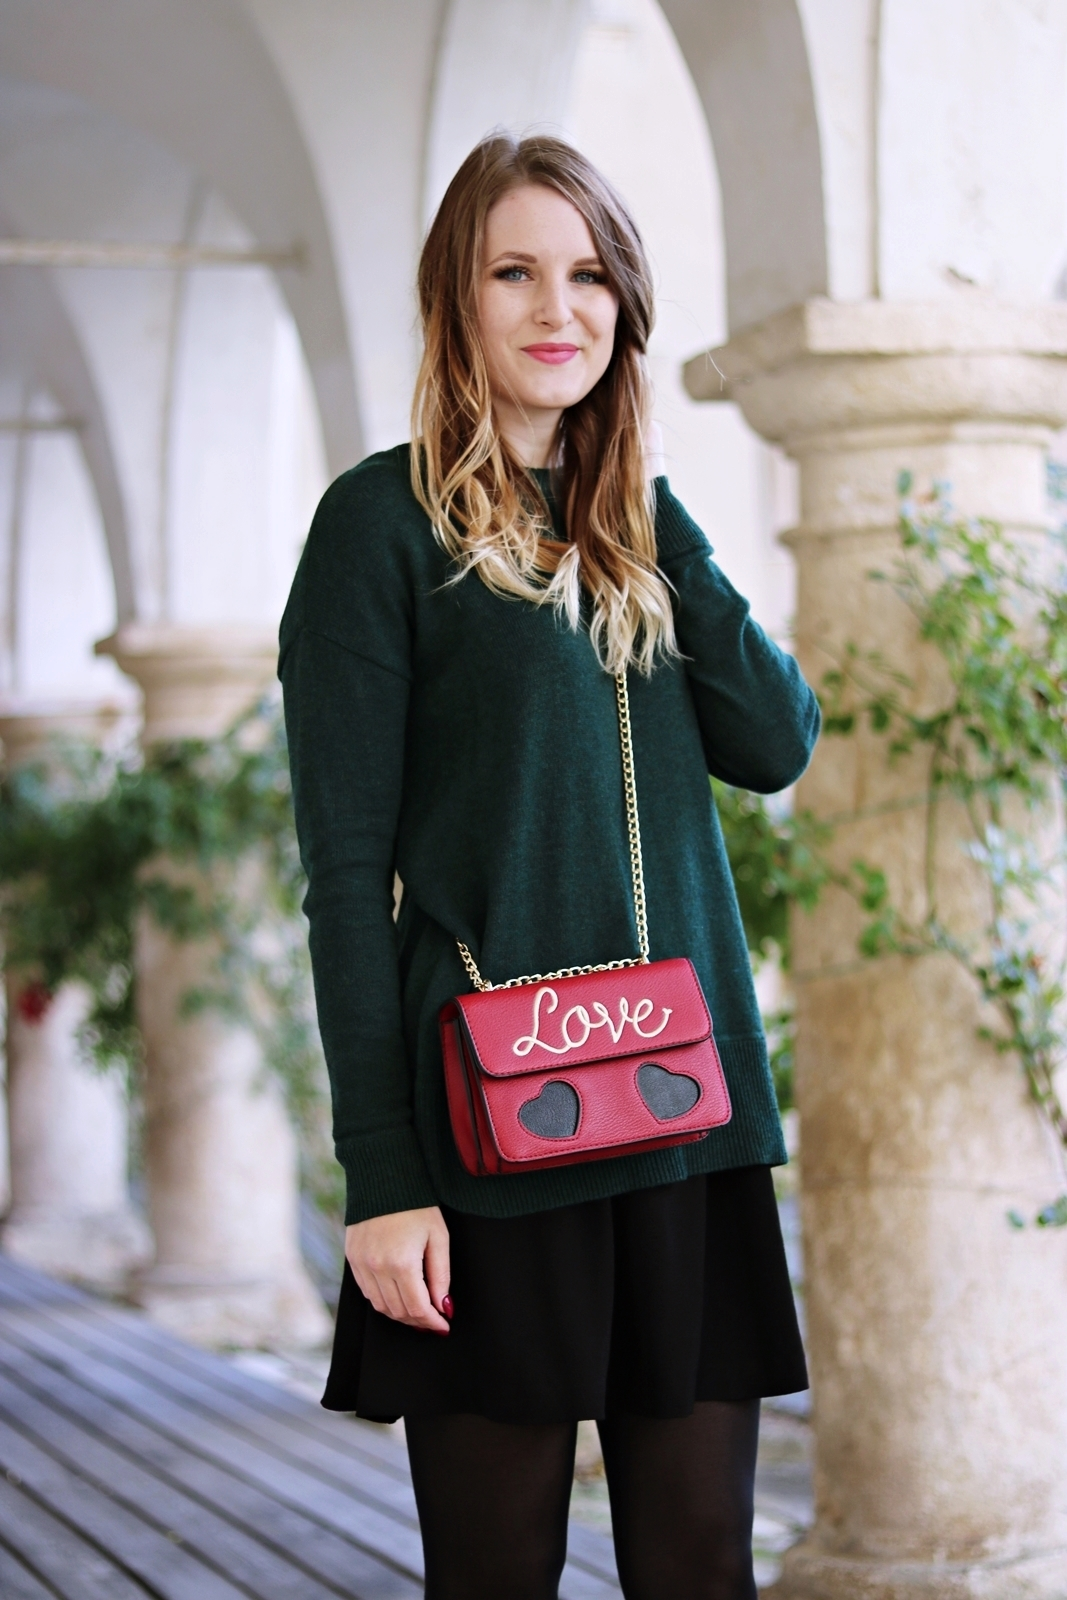 Die Statement Bag als Eyecatcher - Love Bag als Hingucker - Outfit mit Cross Body Bag, Pullover, Rock und Stiefeletten - Outfit Kombination im Herbst - auffällige Handtasche kombinieren - Love Bag - grünen Pulli kombinieren - Rock Kombination im Herbst - Herbst Outfit - Rock kombinieren - Street Style Look - Fashionladyloves by Tamara Wagner - Mode Blog, Fashion Blog aus Graz Österreich